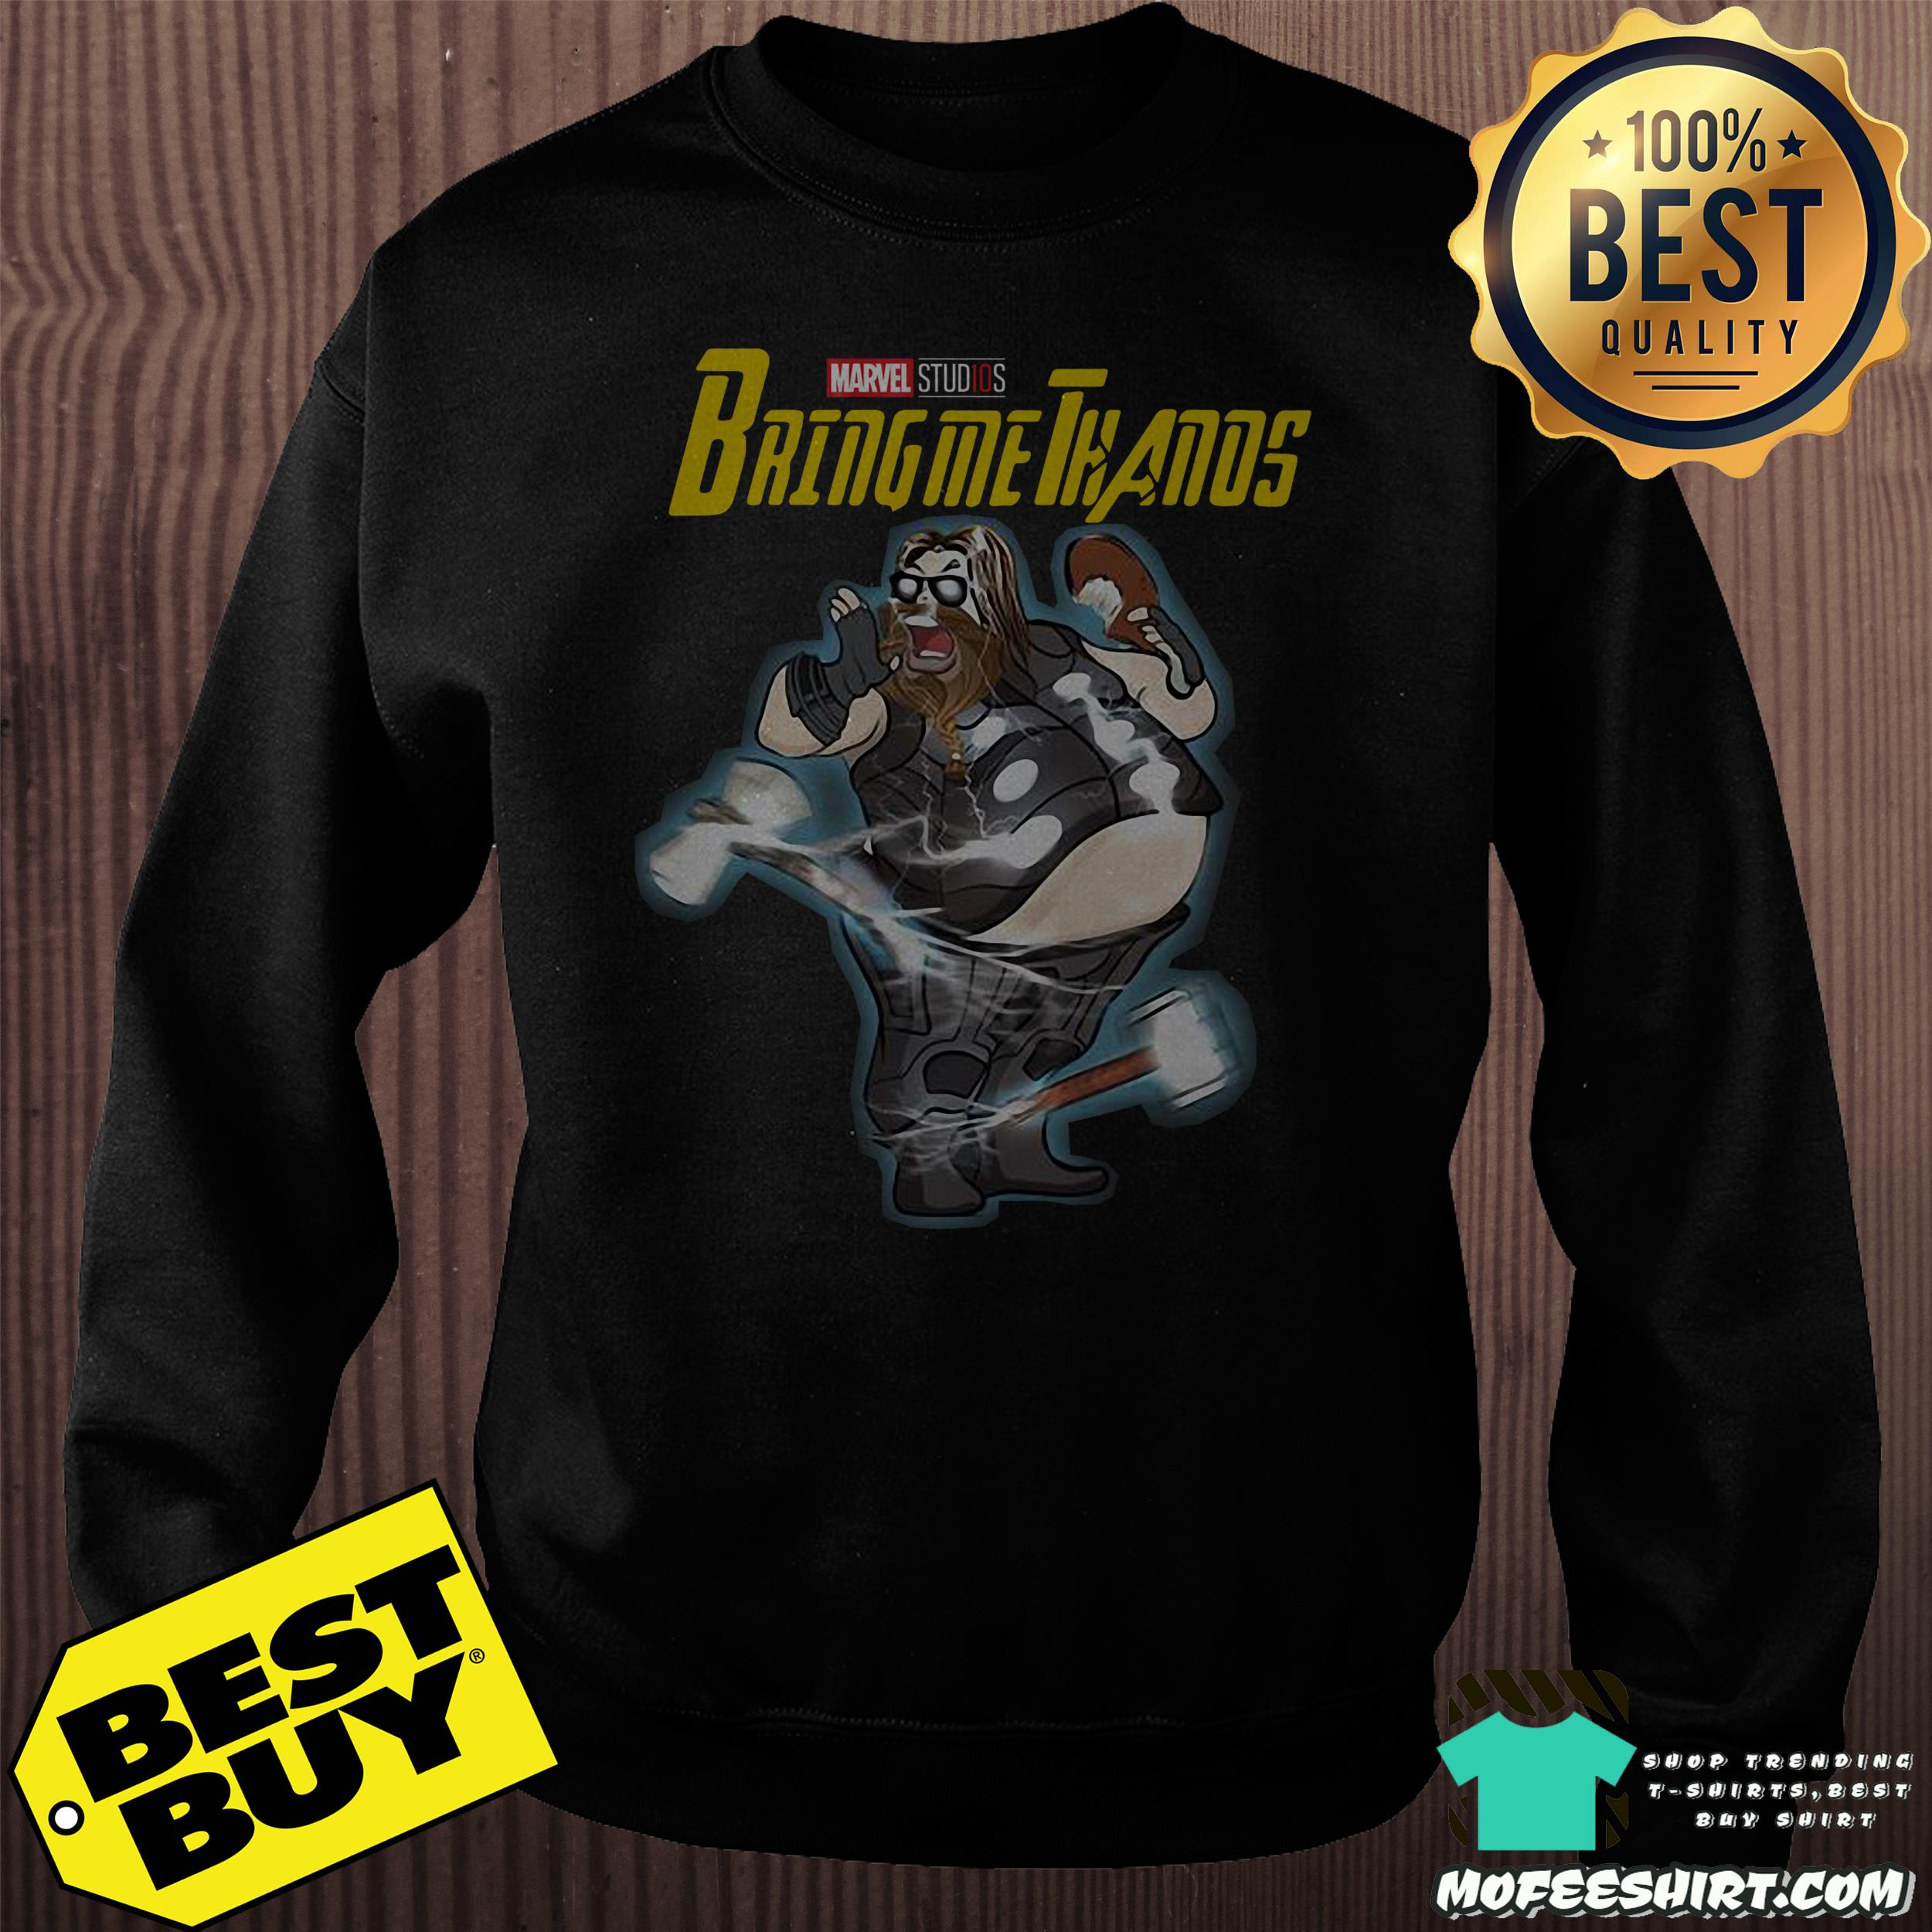 marvel studios thor fat bring me thanos sweatshirt - Marvel Studios Thor fat Bring me Thanos shirt